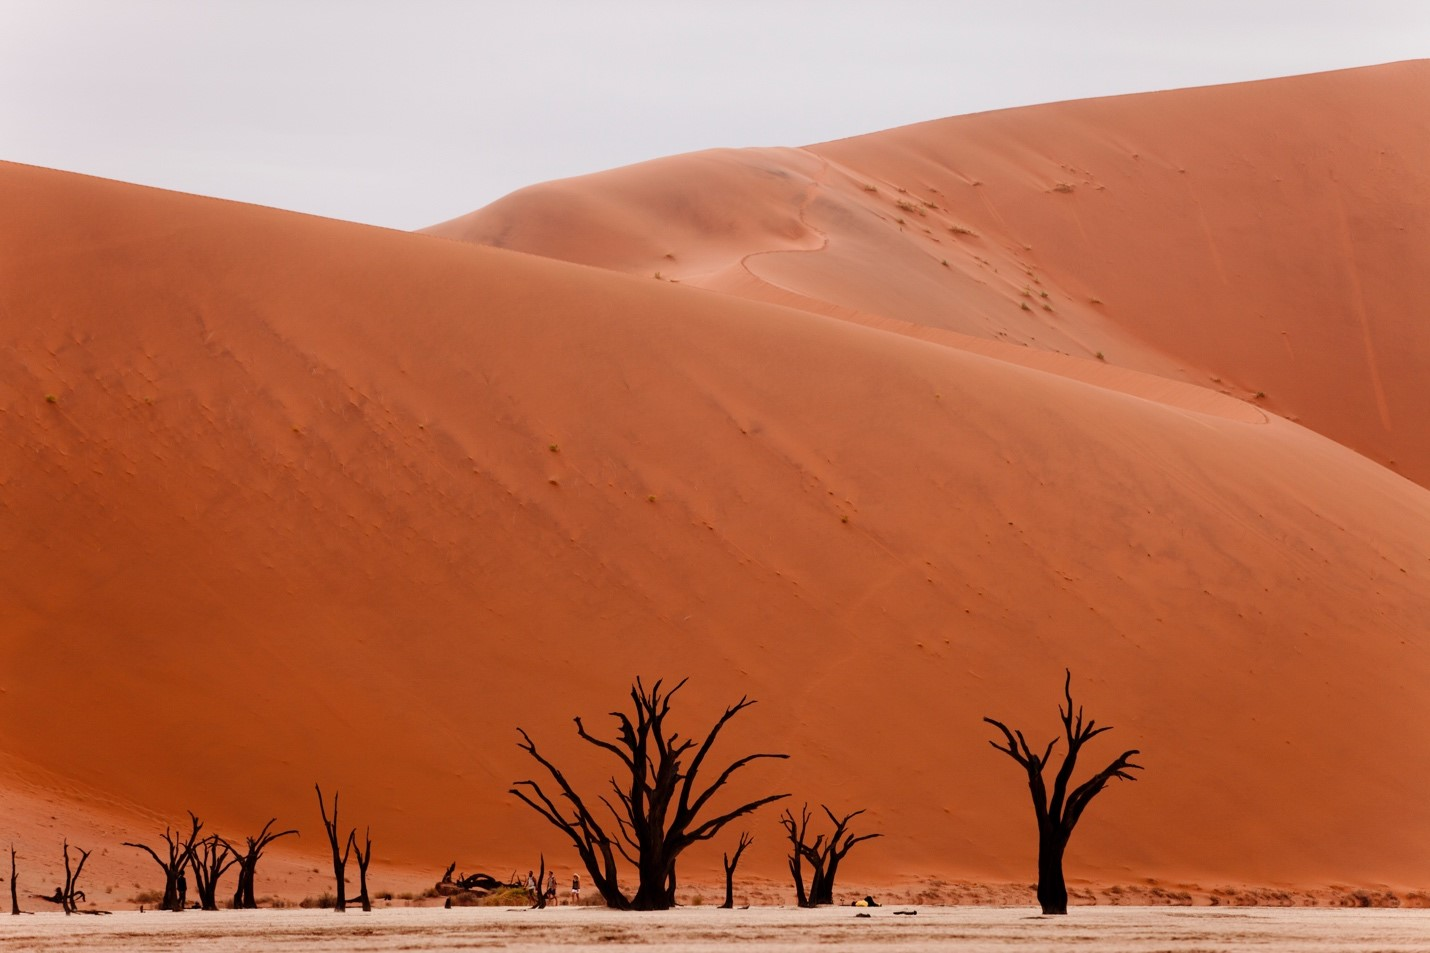 the dunes of sossusvlei tower over trees